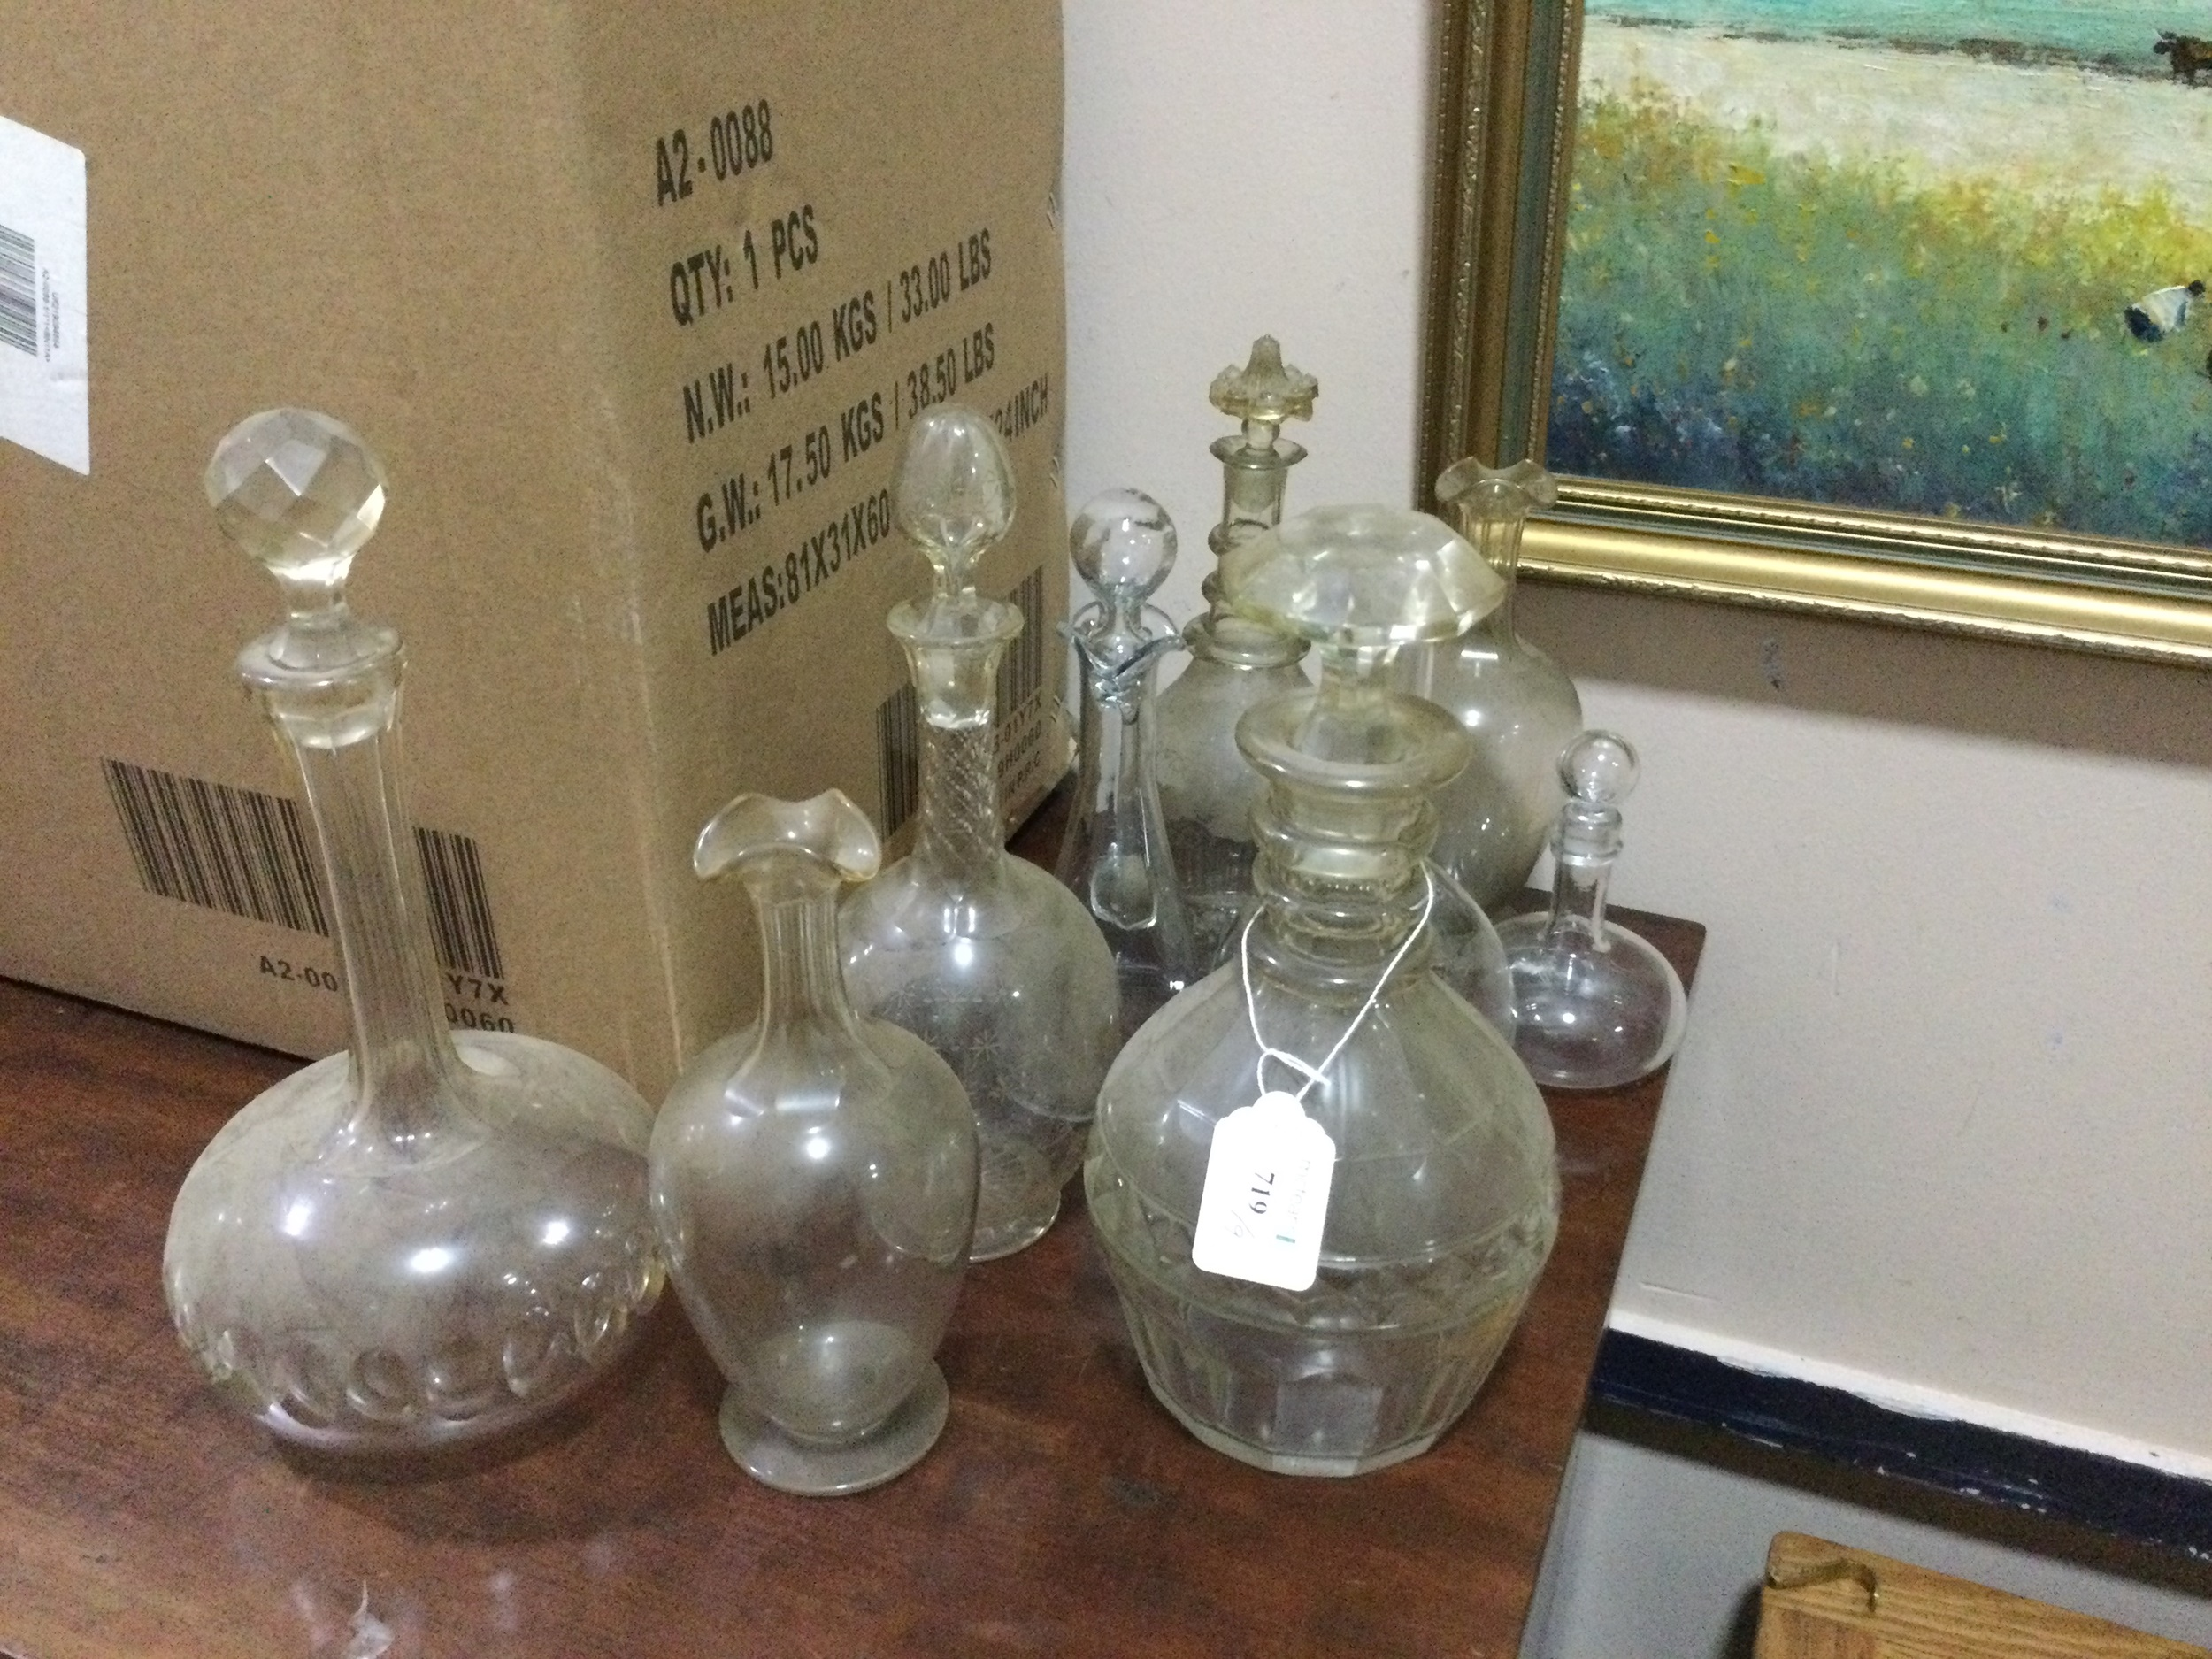 A 19TH CENTURY CUT GLASS DECANTER WITH STOPPER AND OTHER DECANTERS